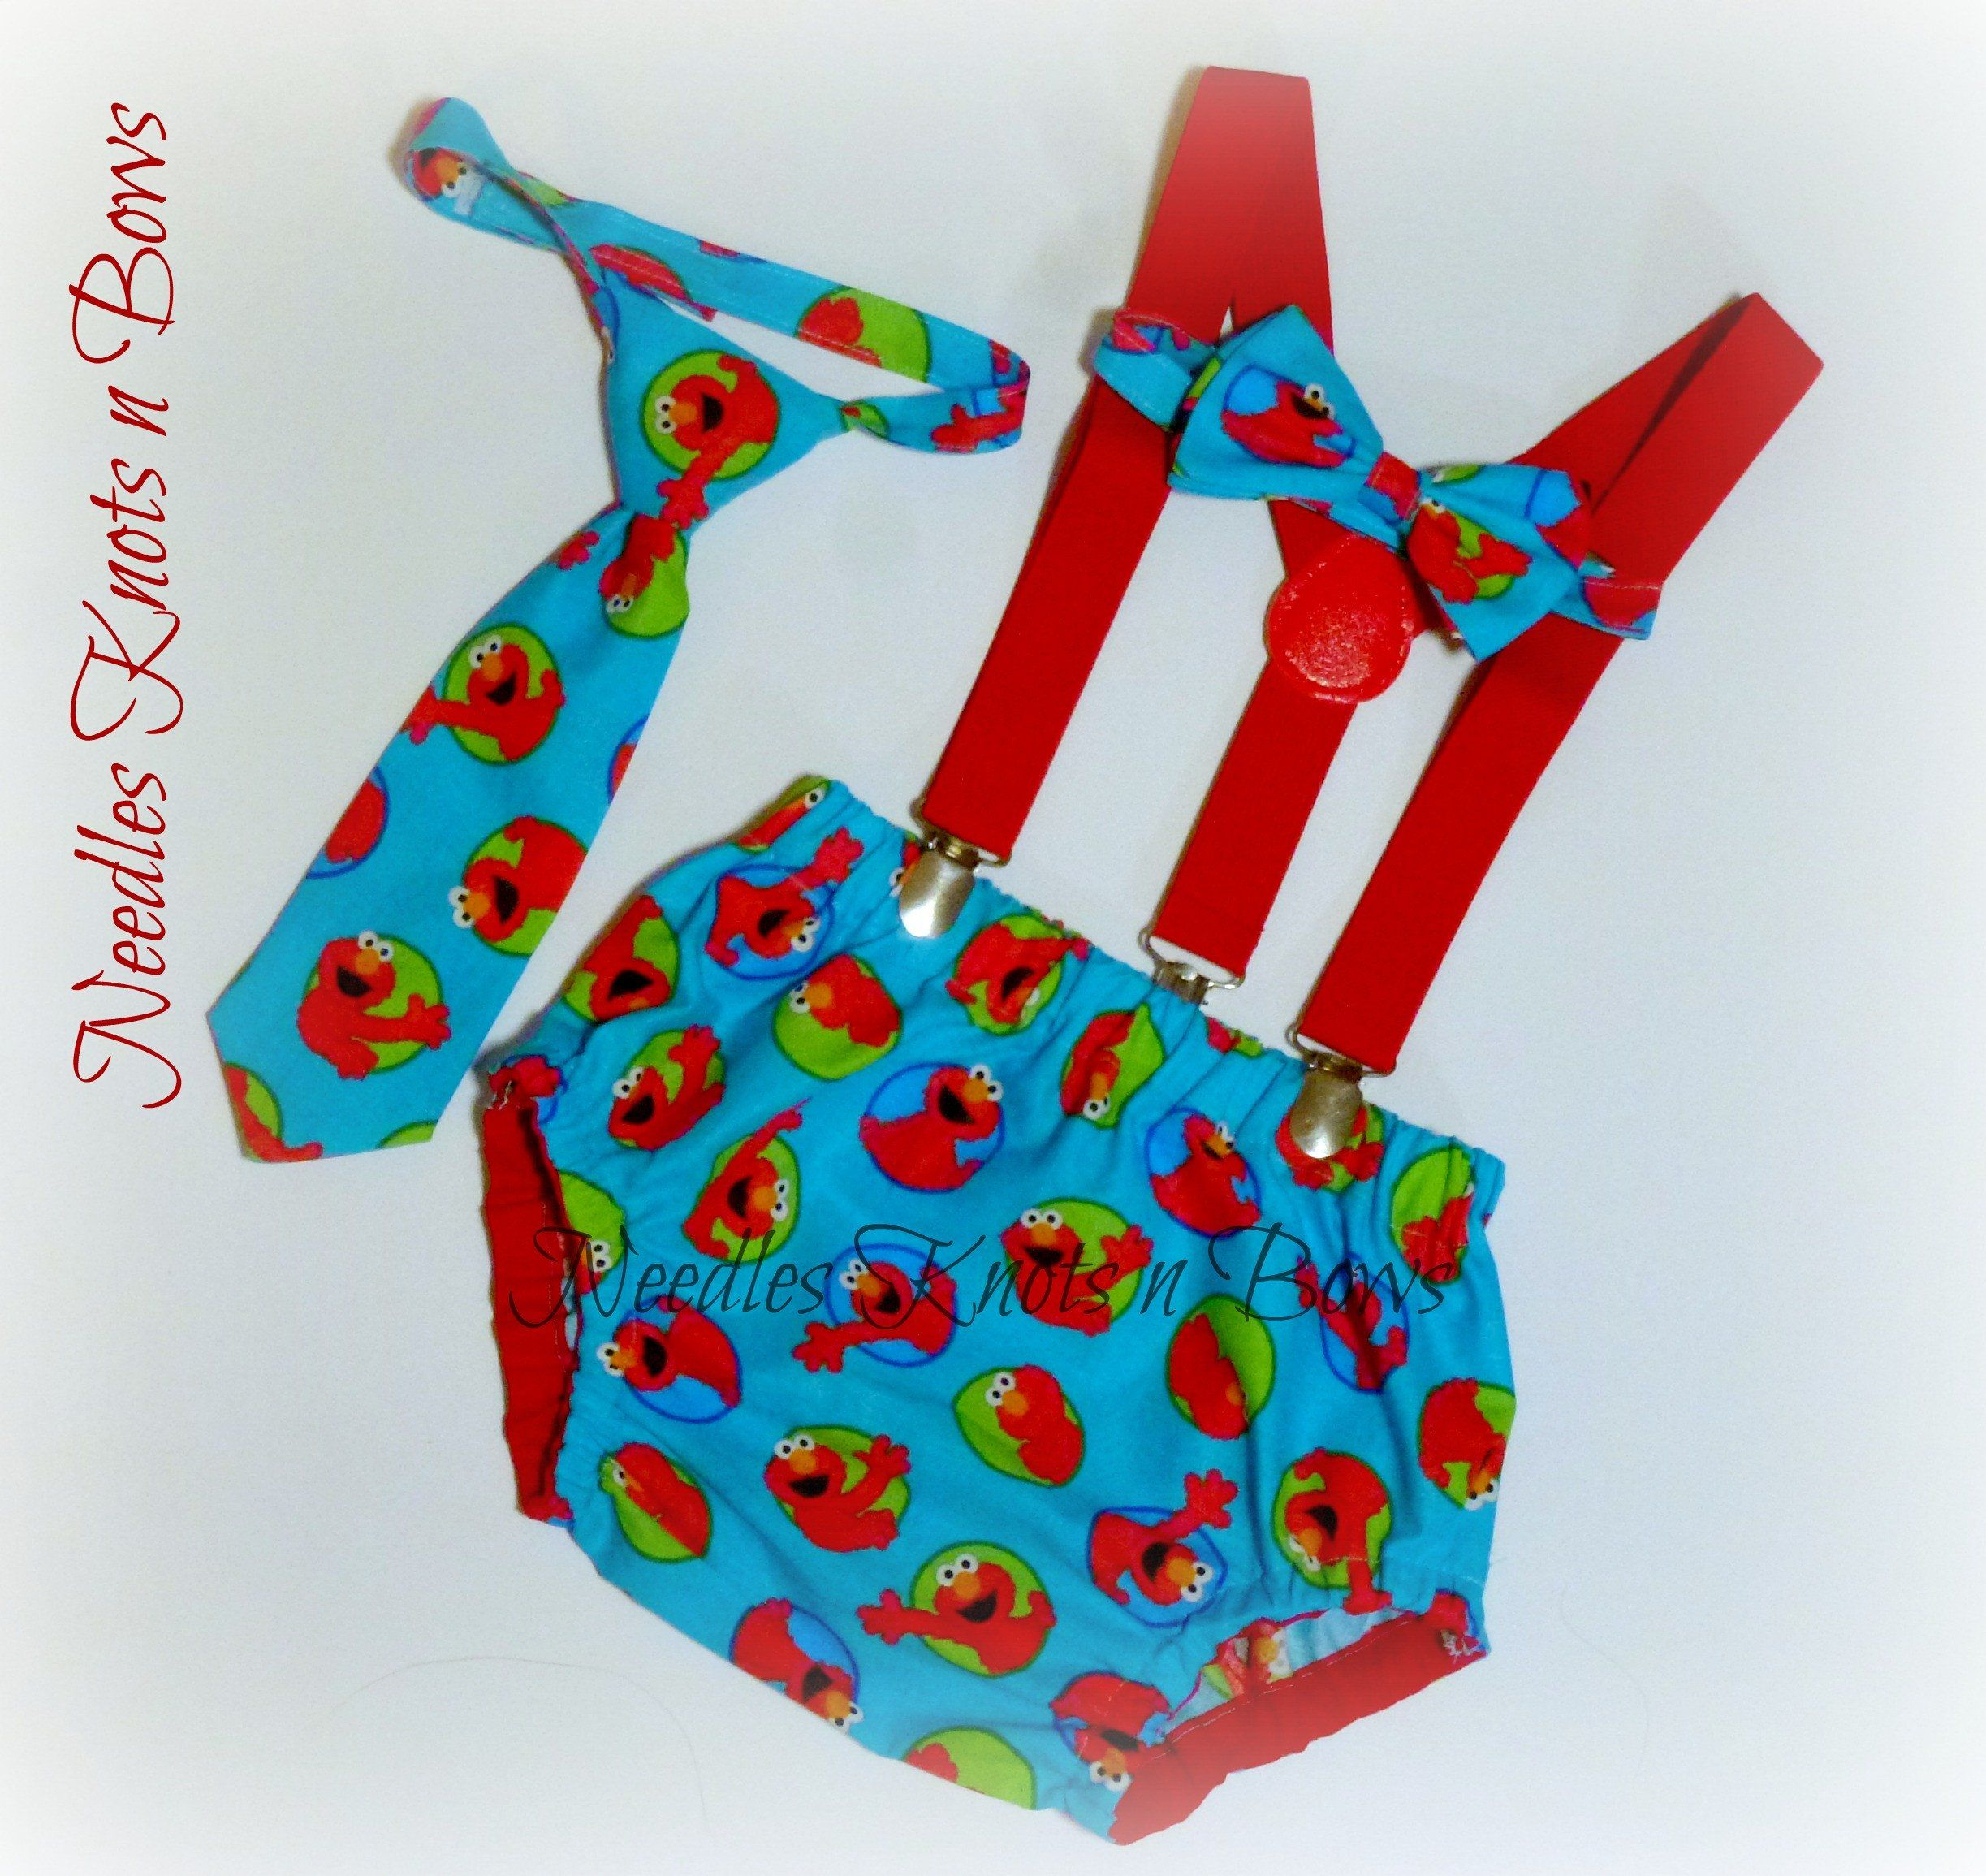 777b44505 Boys Elmo themed birthday cake smash set includes: Elmo diaper cover,  suspenders and your choice of a tie or bowtie. Matching Elmo Birthday Hat  can be added ...